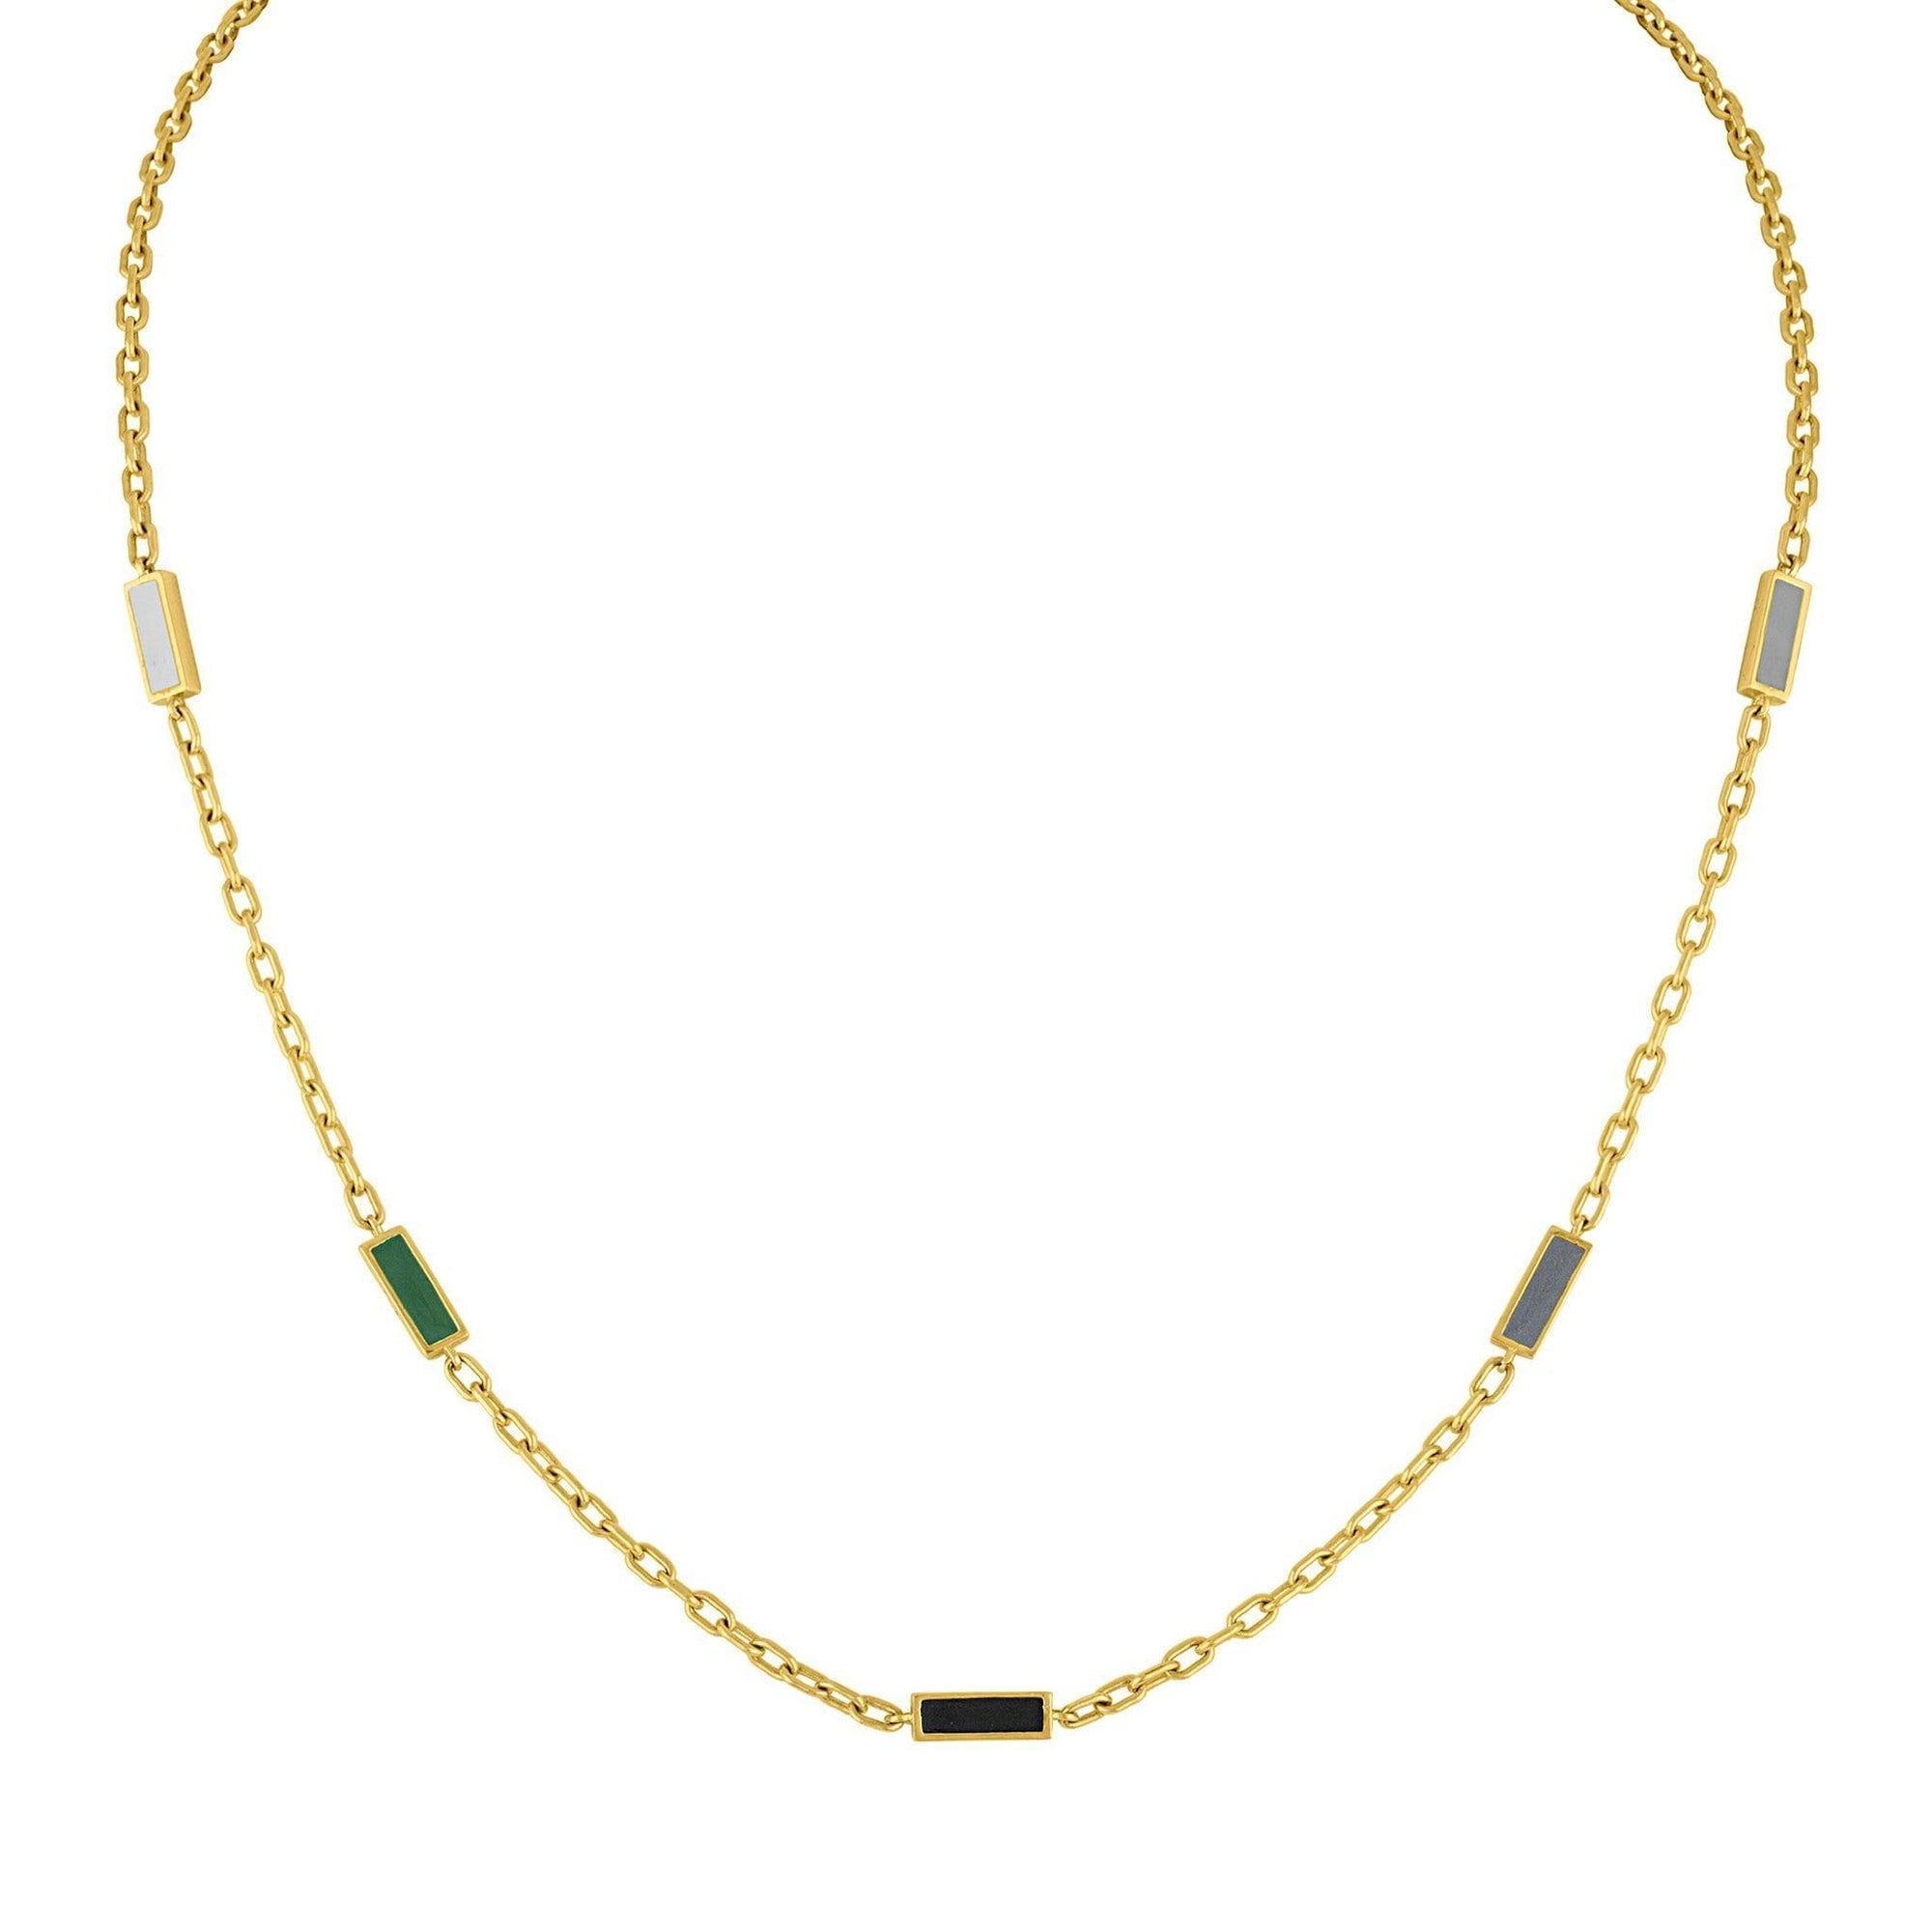 Enamel Five Baquette Necklace: 14k Gold, Enamel